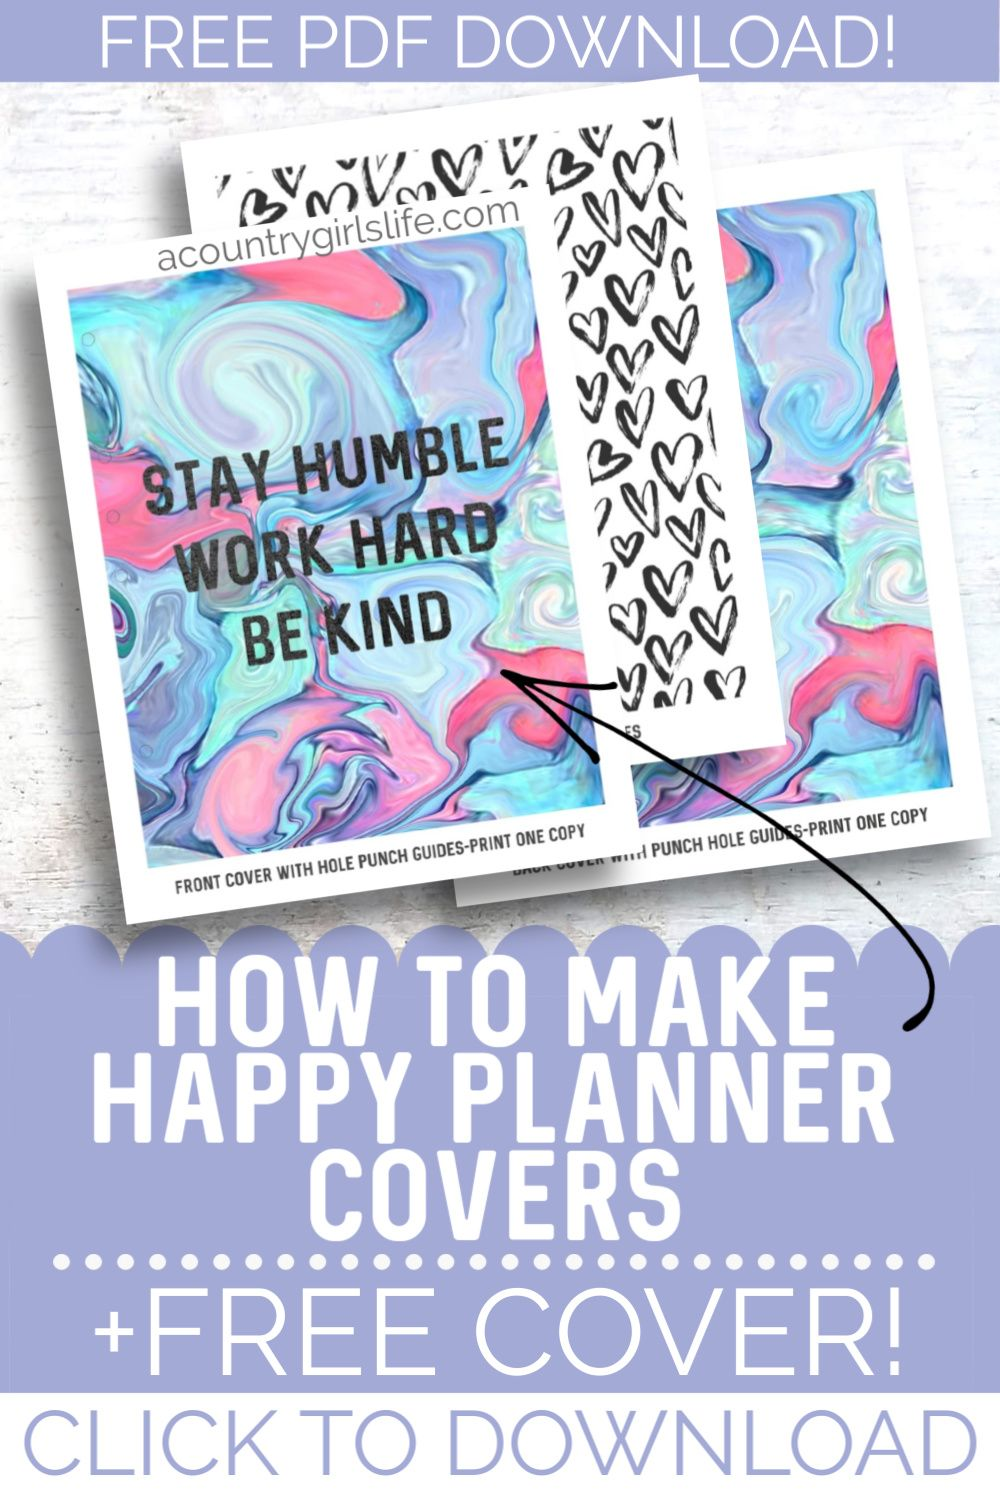 Diy Happy Planner Covers Free Printable Covers A Country Girl S Life In 2020 Happy Planner Cover Planner Printables Free Planner Cover